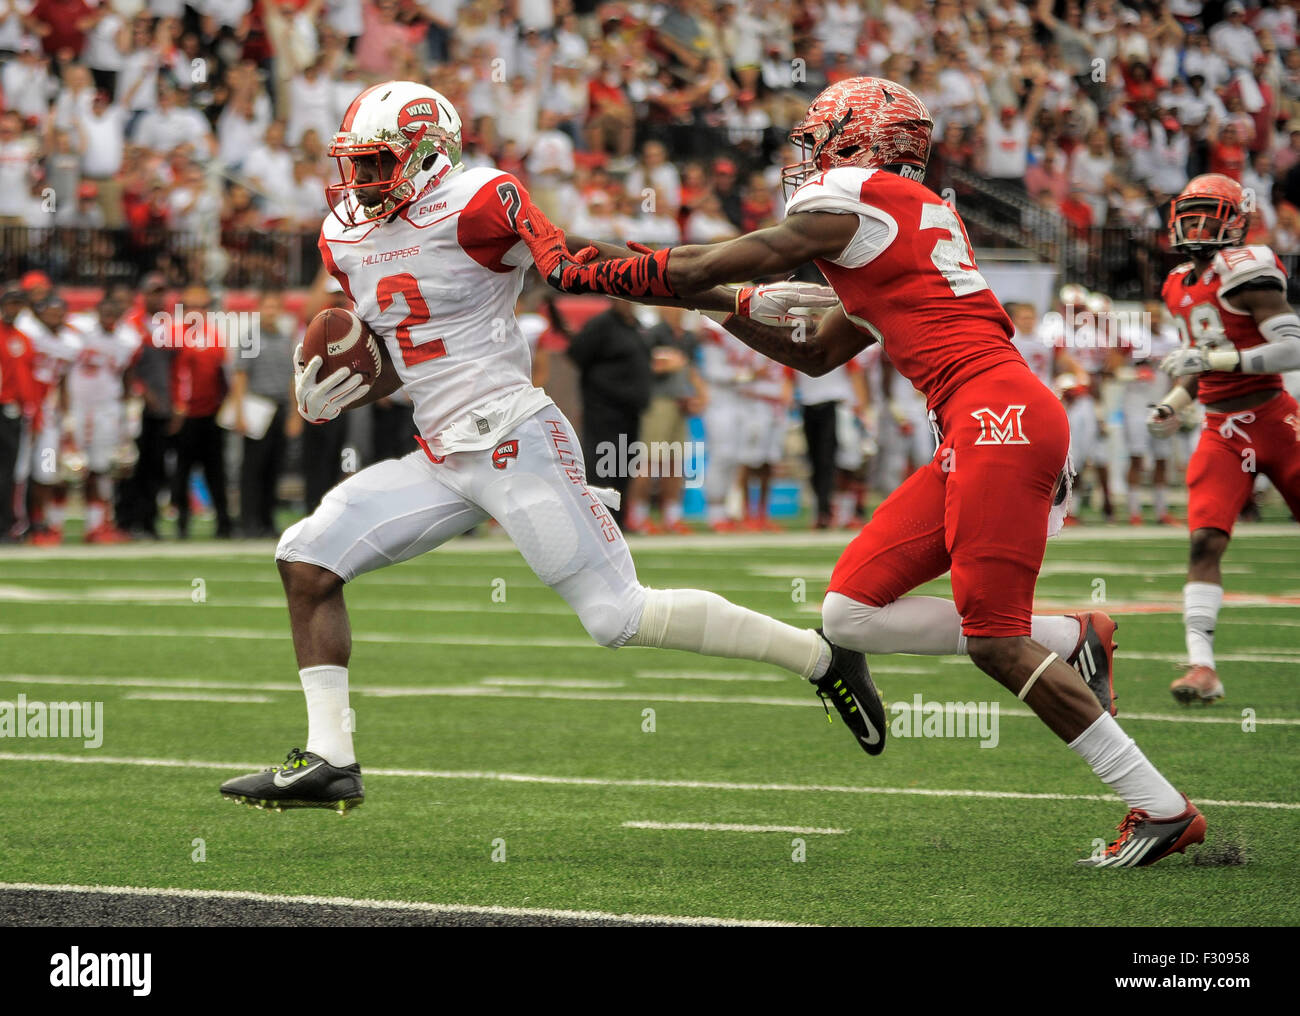 September 26, 2015 Western Kentucky Hilltoppers wide receiver Taywan Taylor (2) pulls away from Miami (Oh) Redhawks - Stock Image